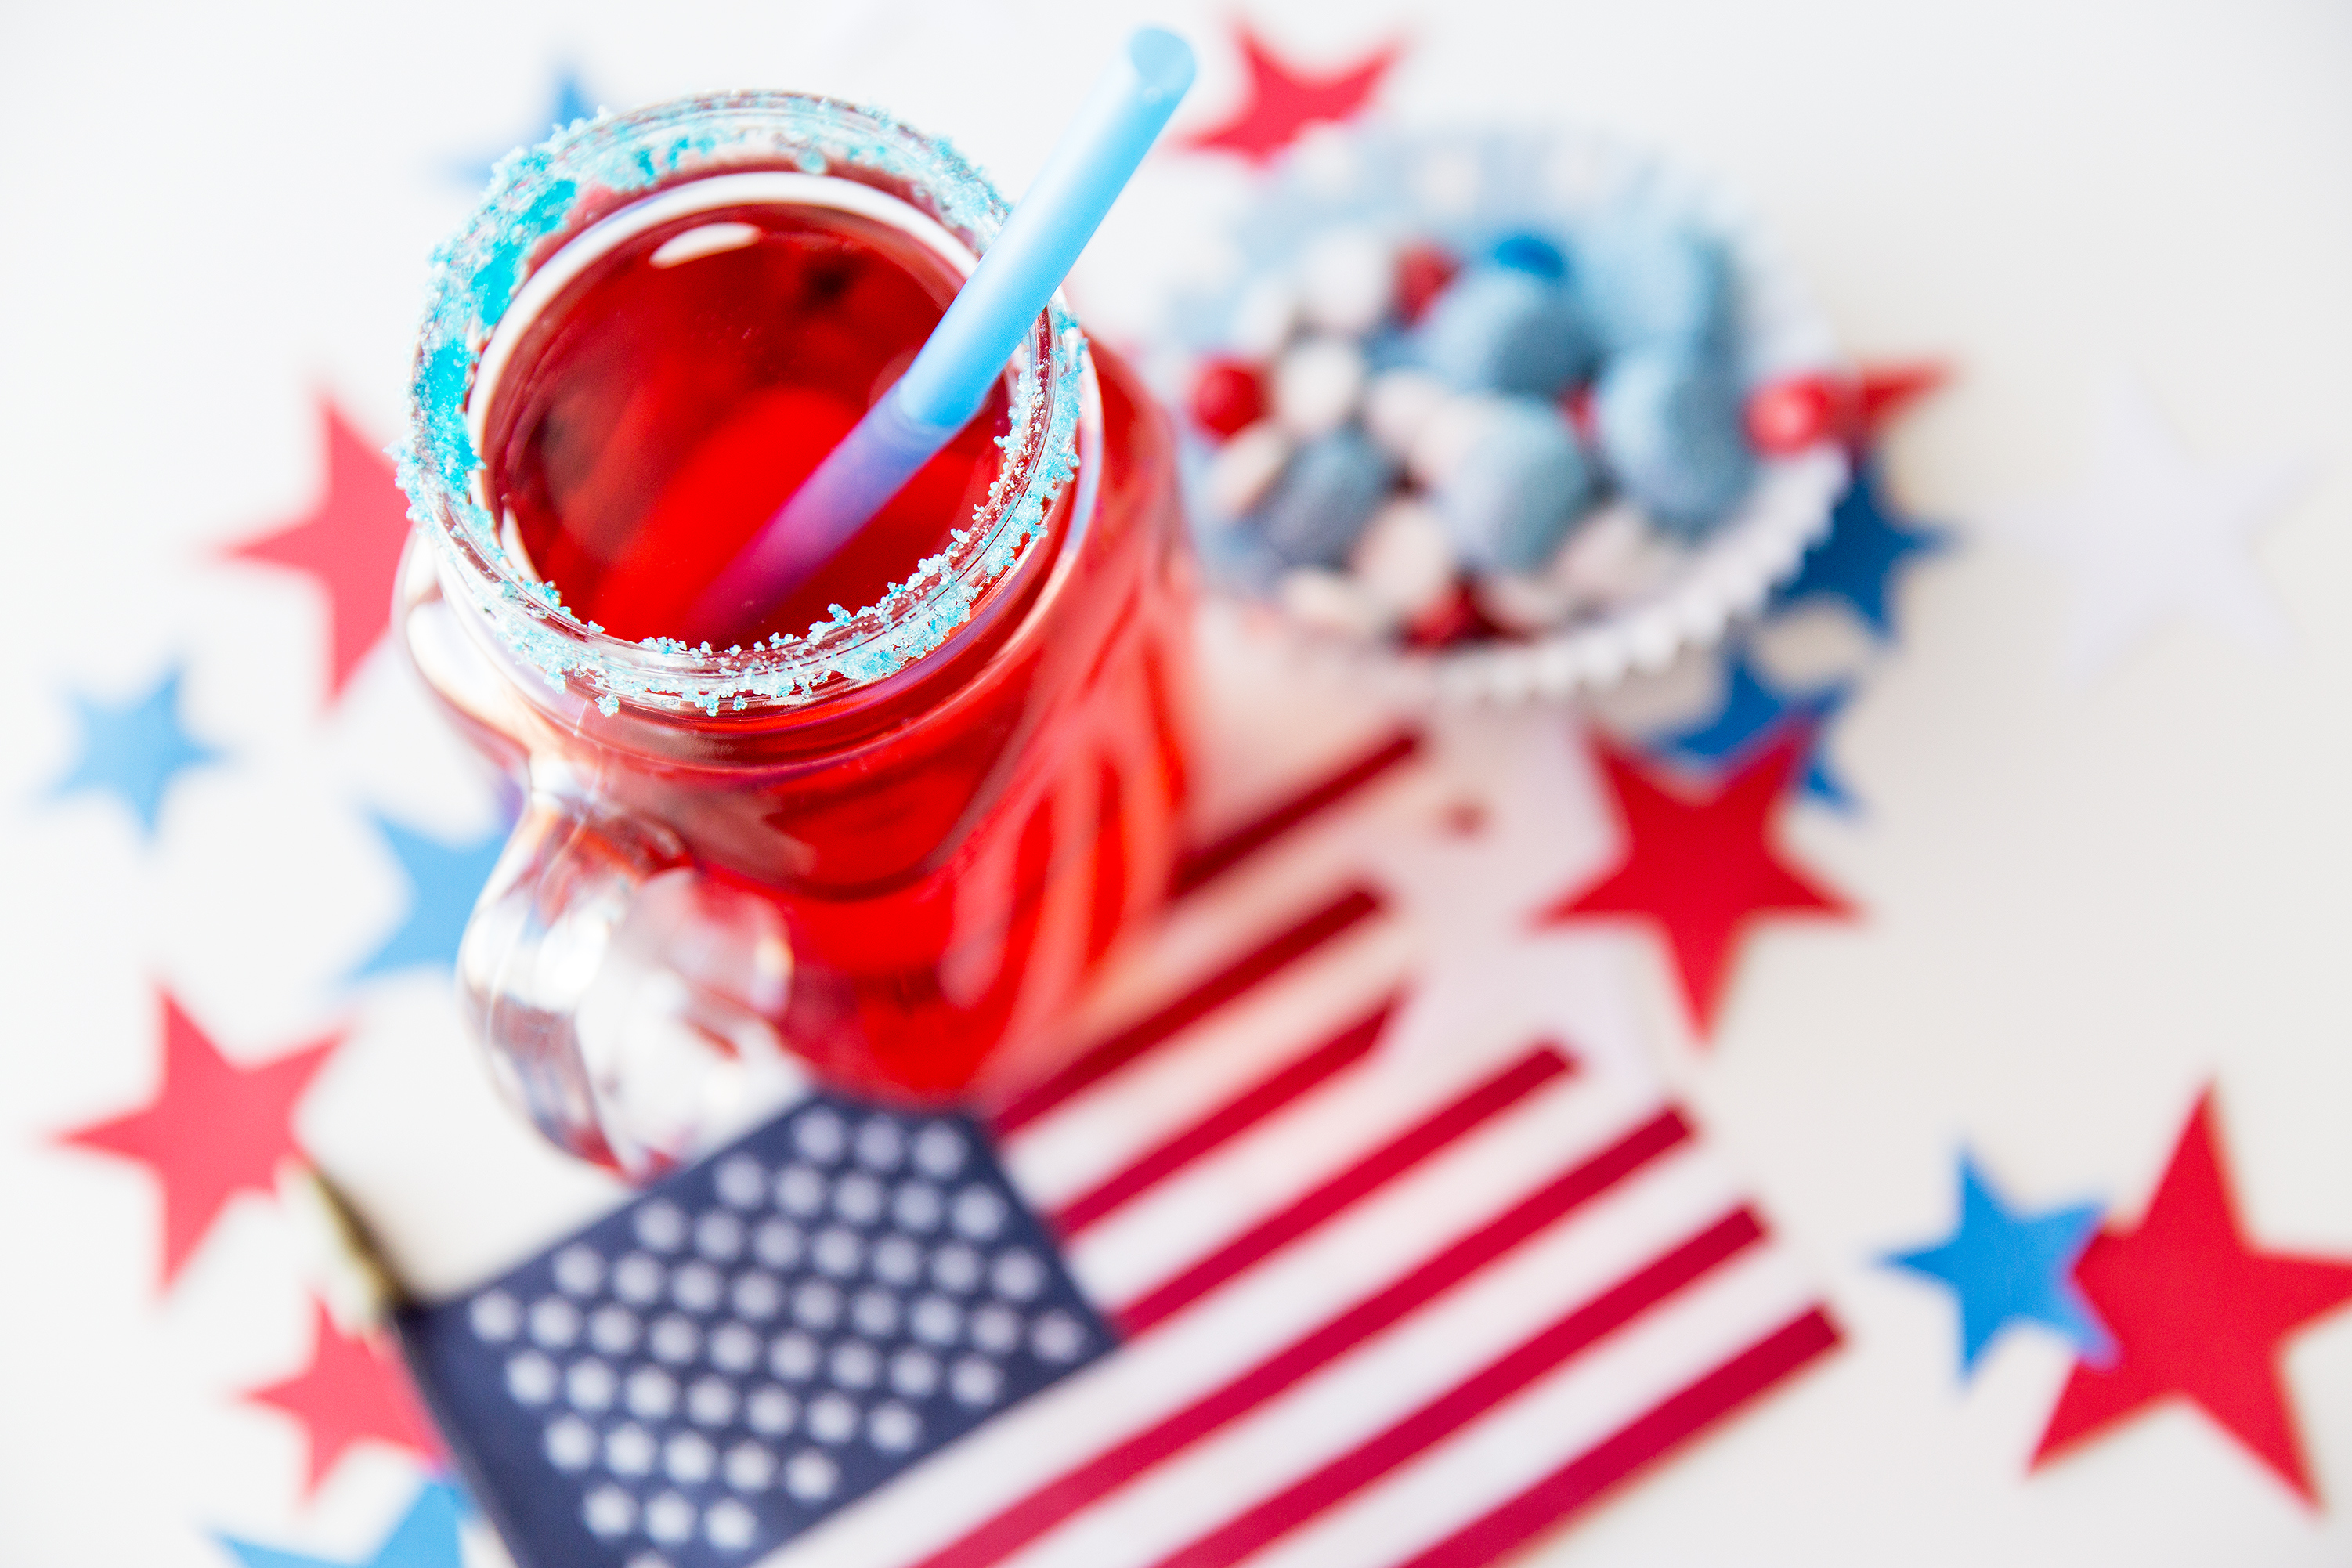 Cheers to the Red, White and Blue | William Pitt Sotheby's